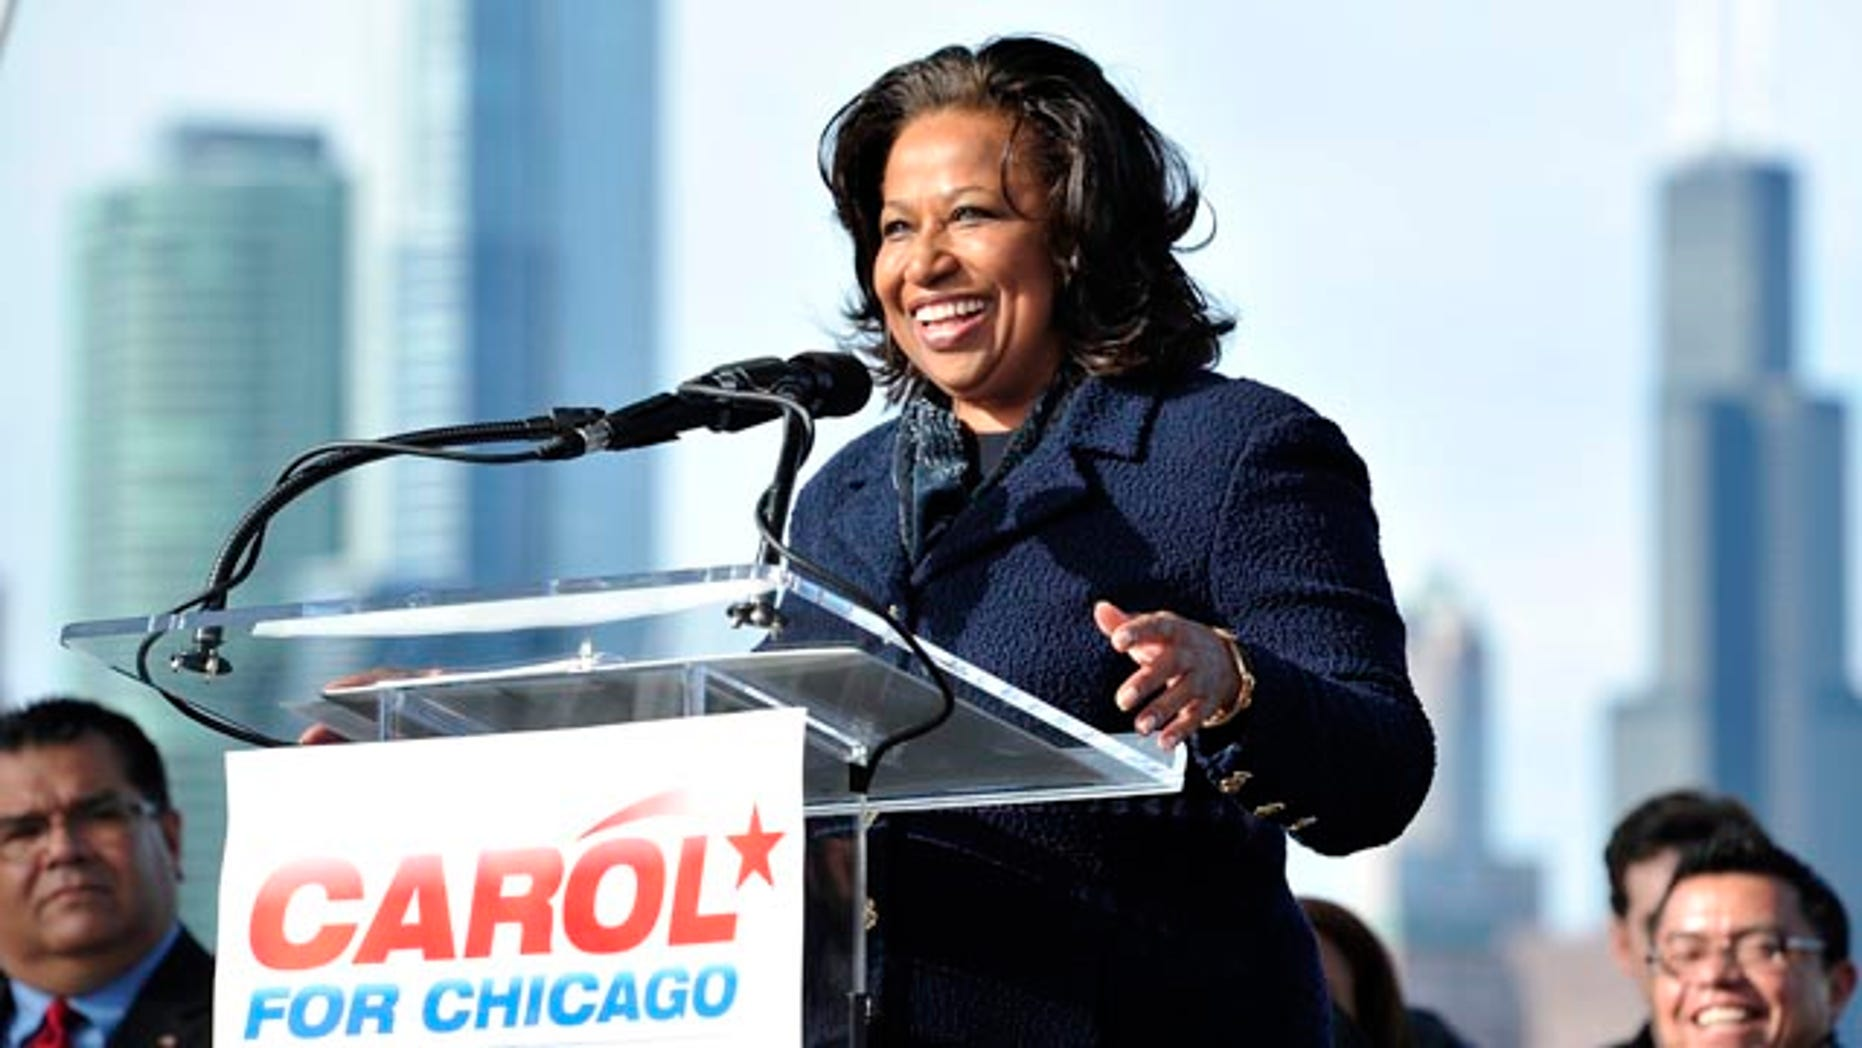 Nov. 20: Former U.S. Sen. Carol Moseley Braun shown here in Chicago as she formally announces her candidacy for Chicago mayor. Braun joins a crowded field of candidates including former White House chief of staff Rahm Emanuel.